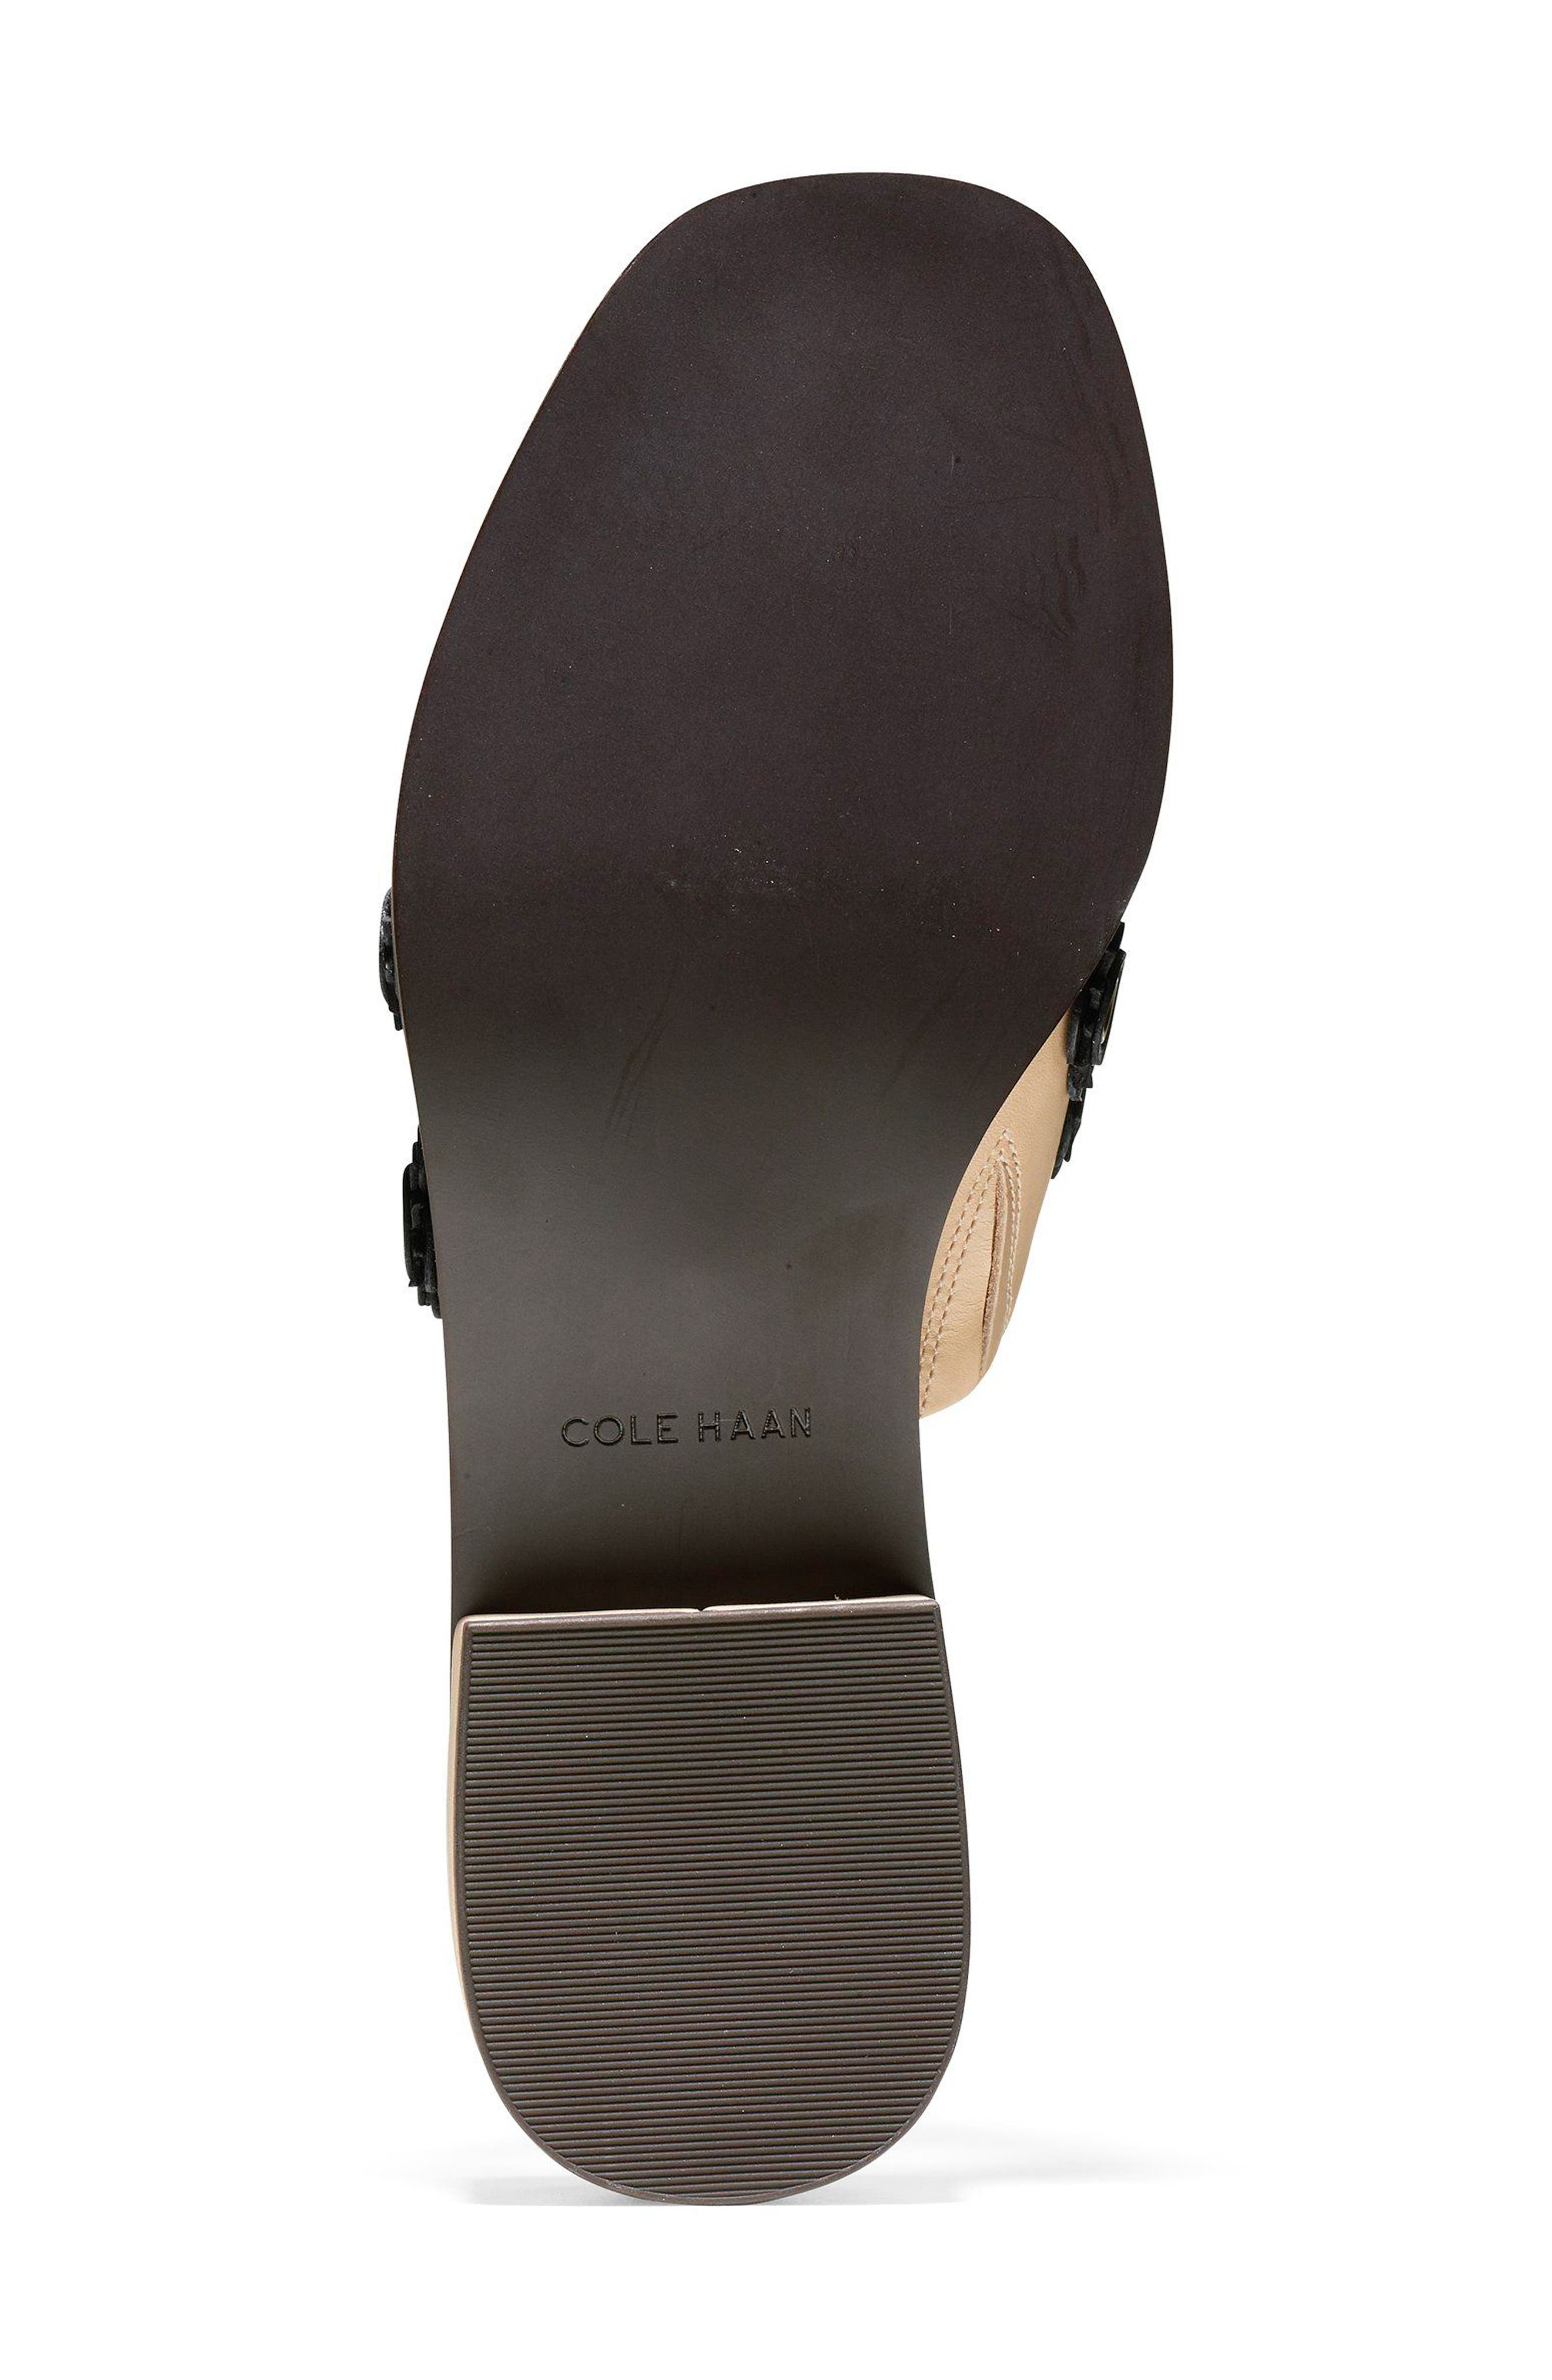 Carly Floral Sandal,                             Alternate thumbnail 6, color,                             Nude/ Black Leather